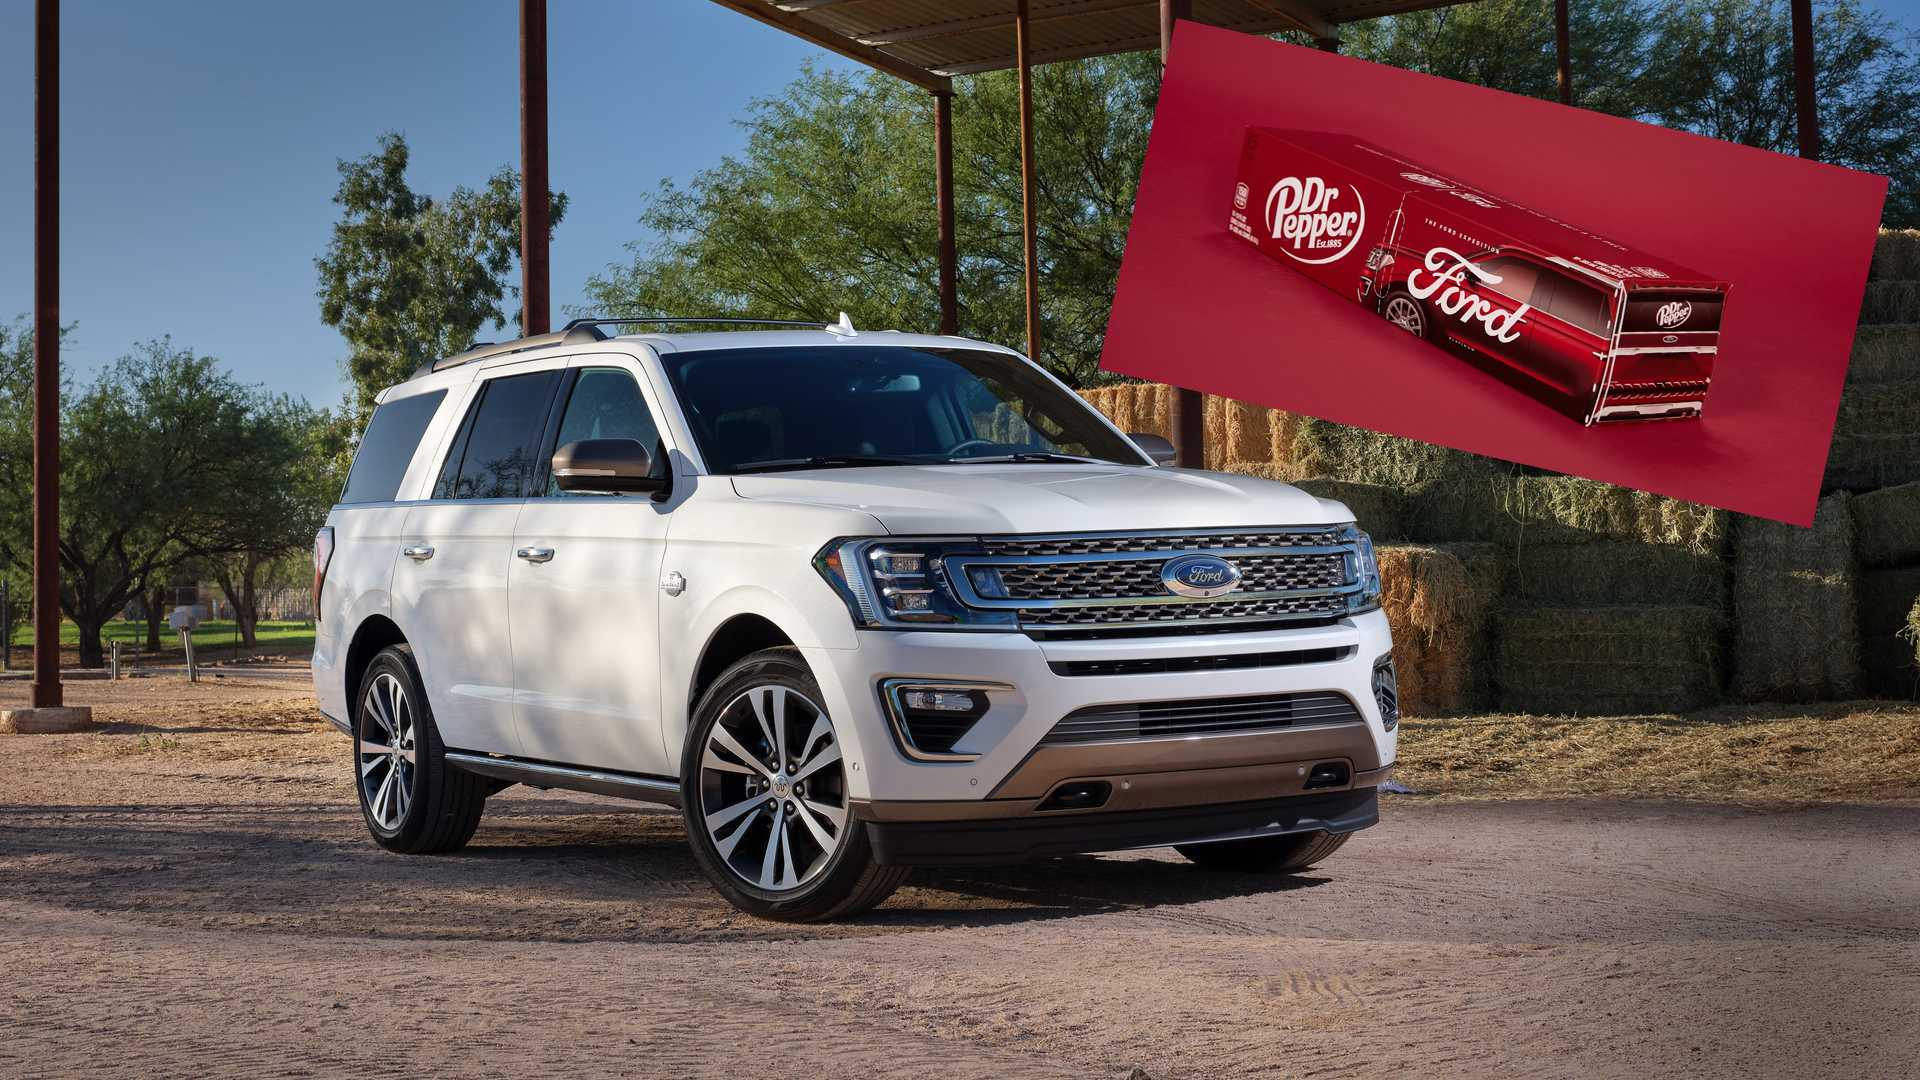 Ford And Dr Pepper Partner On Weird Expedition Cup Holder Promo